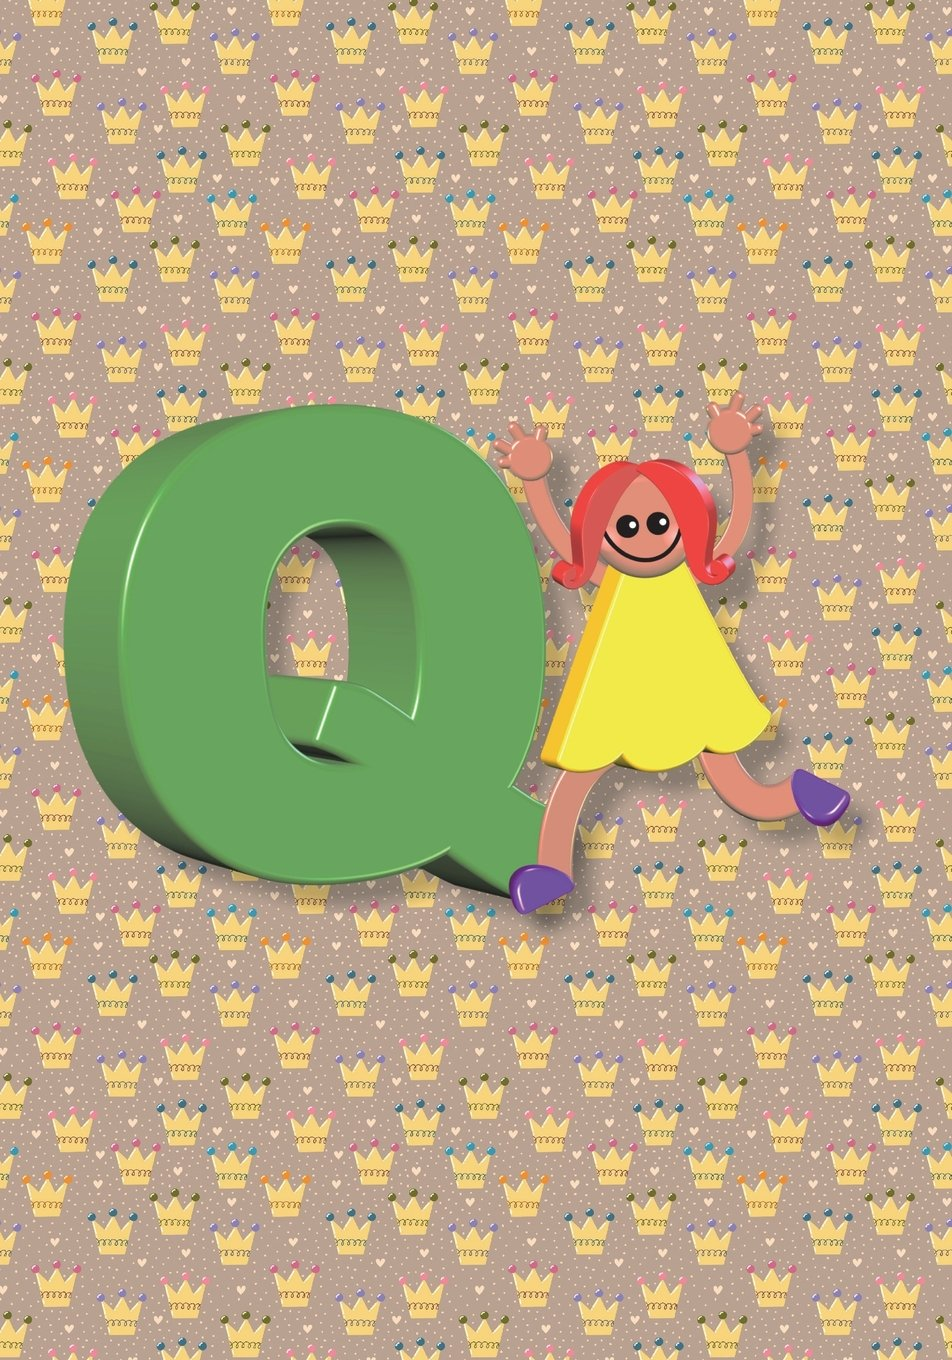 Download Q Notebook: Back To School Notebooks, Soft Paperback, Cute College Ruled Notebook - Journal Or Diary Notebook for Girls ebook